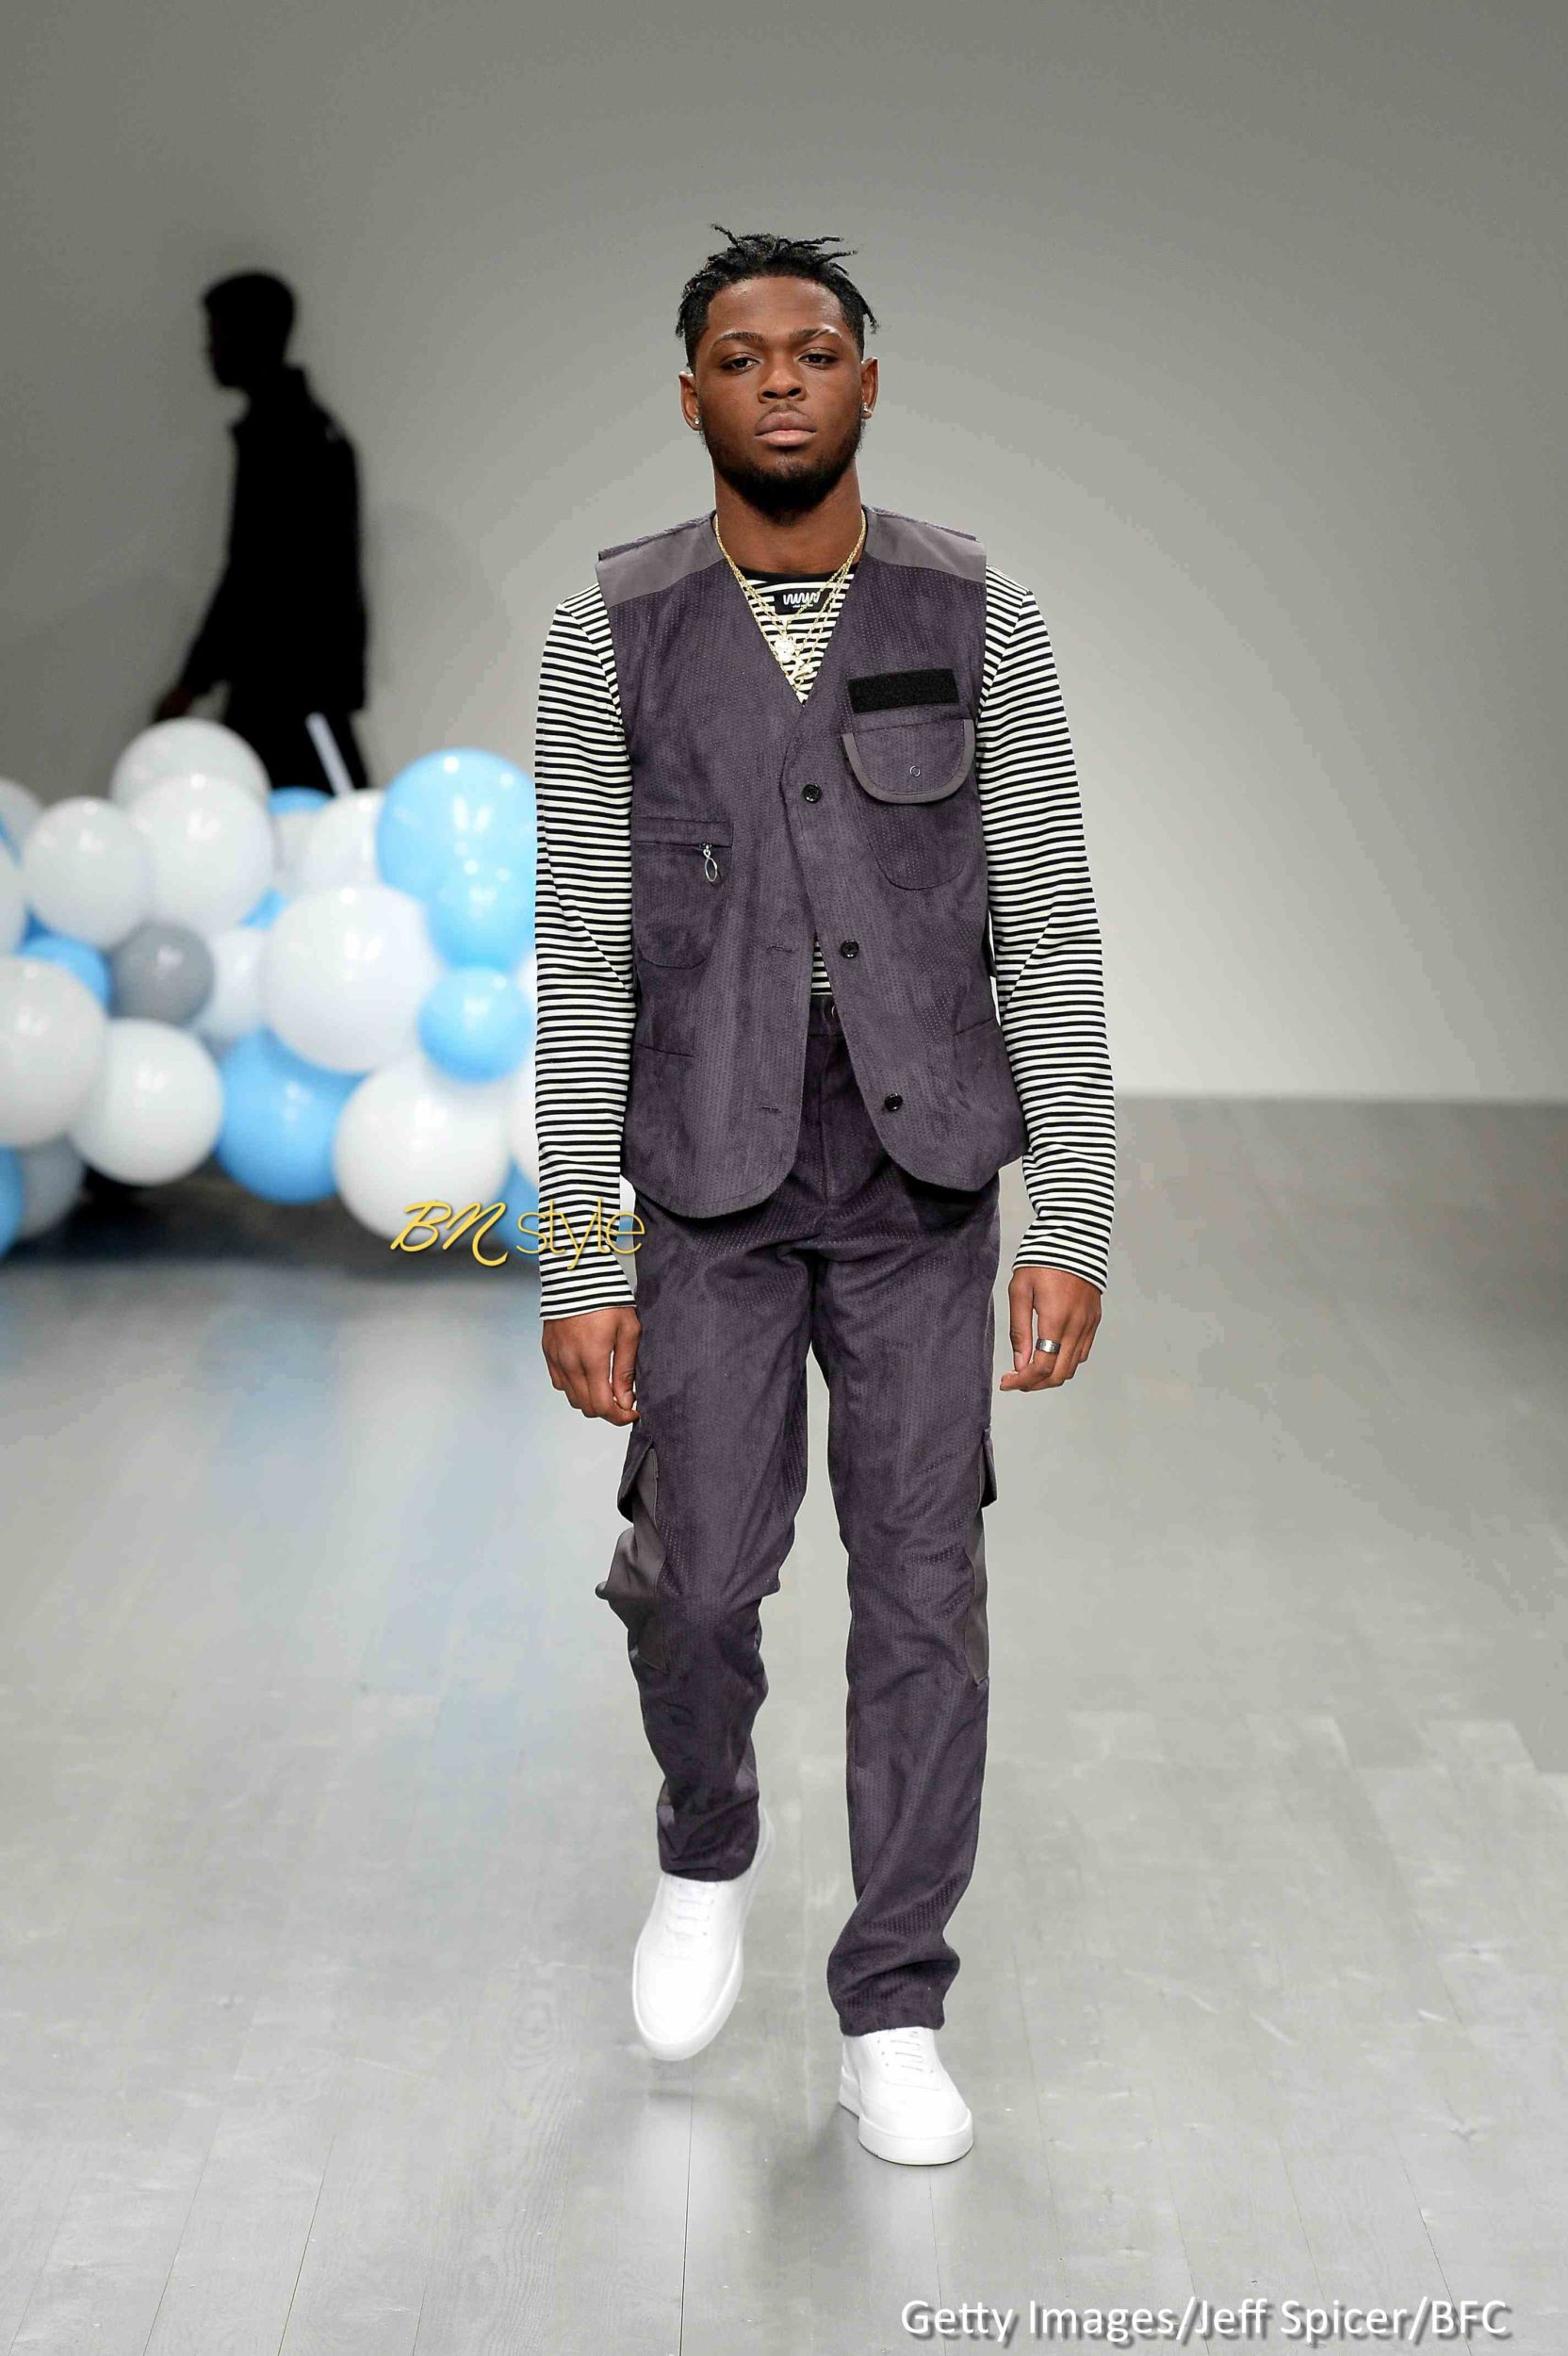 Tinie Tempah unveiled the Coolest Collection at London Fashion Week Men's